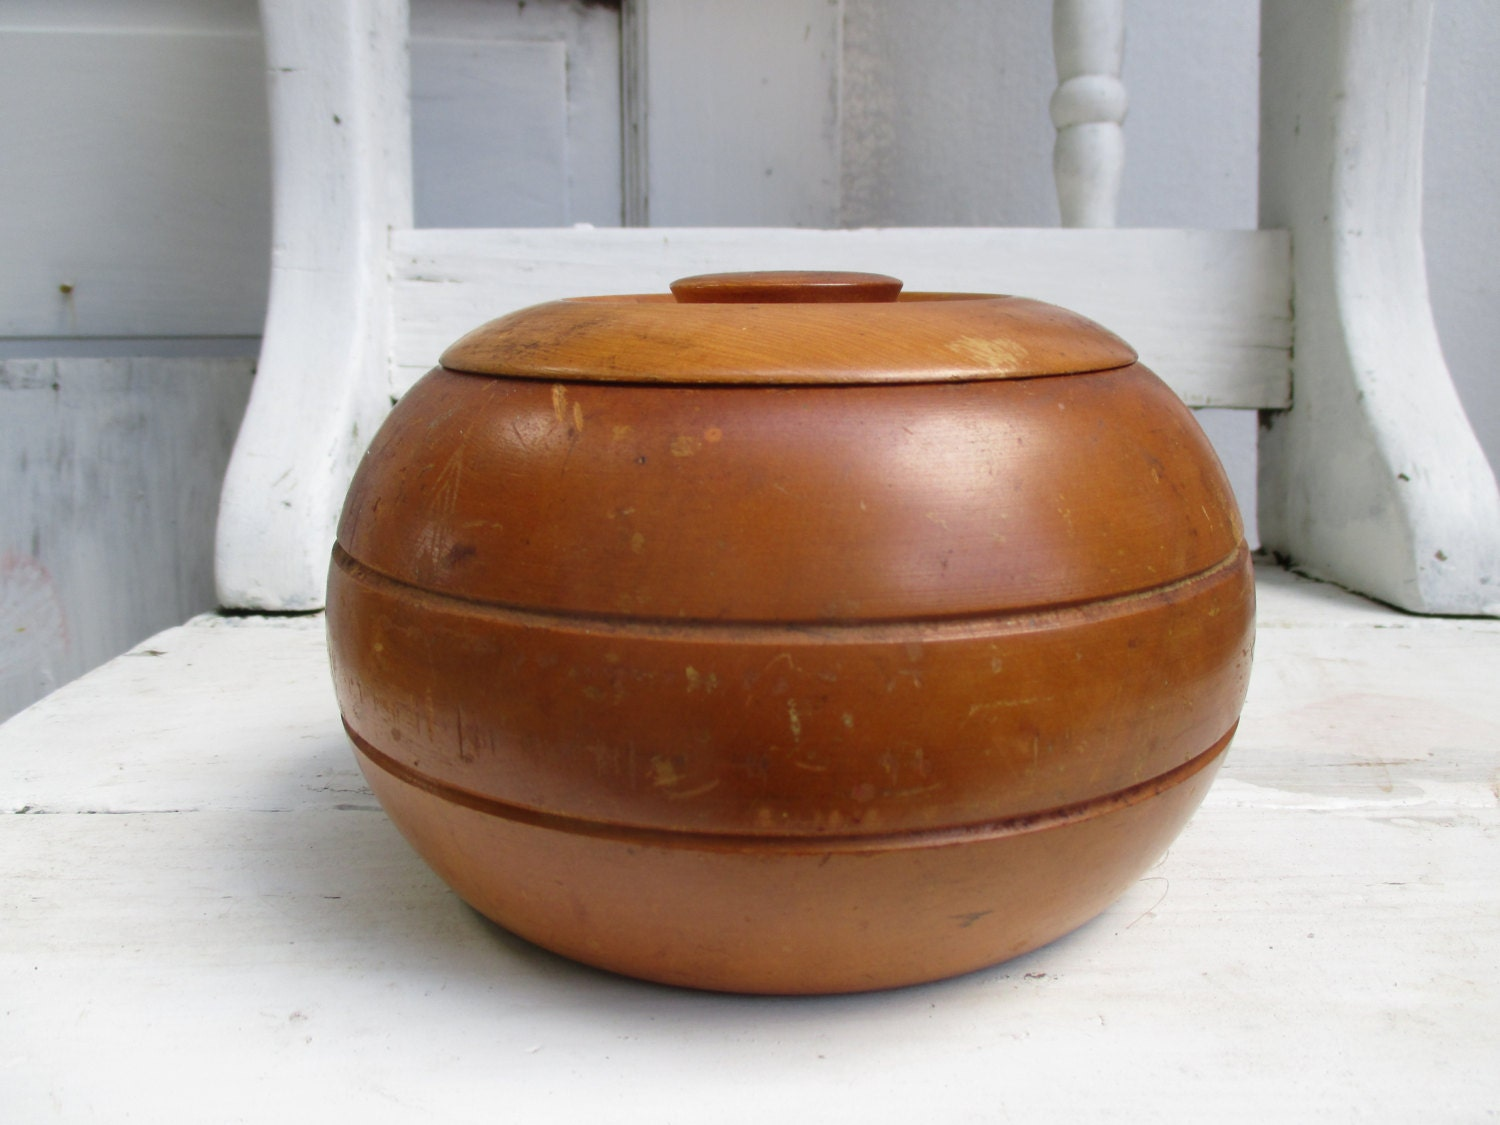 vintage wood bowl wood canister wood container round decorative kitchen canisters and jars